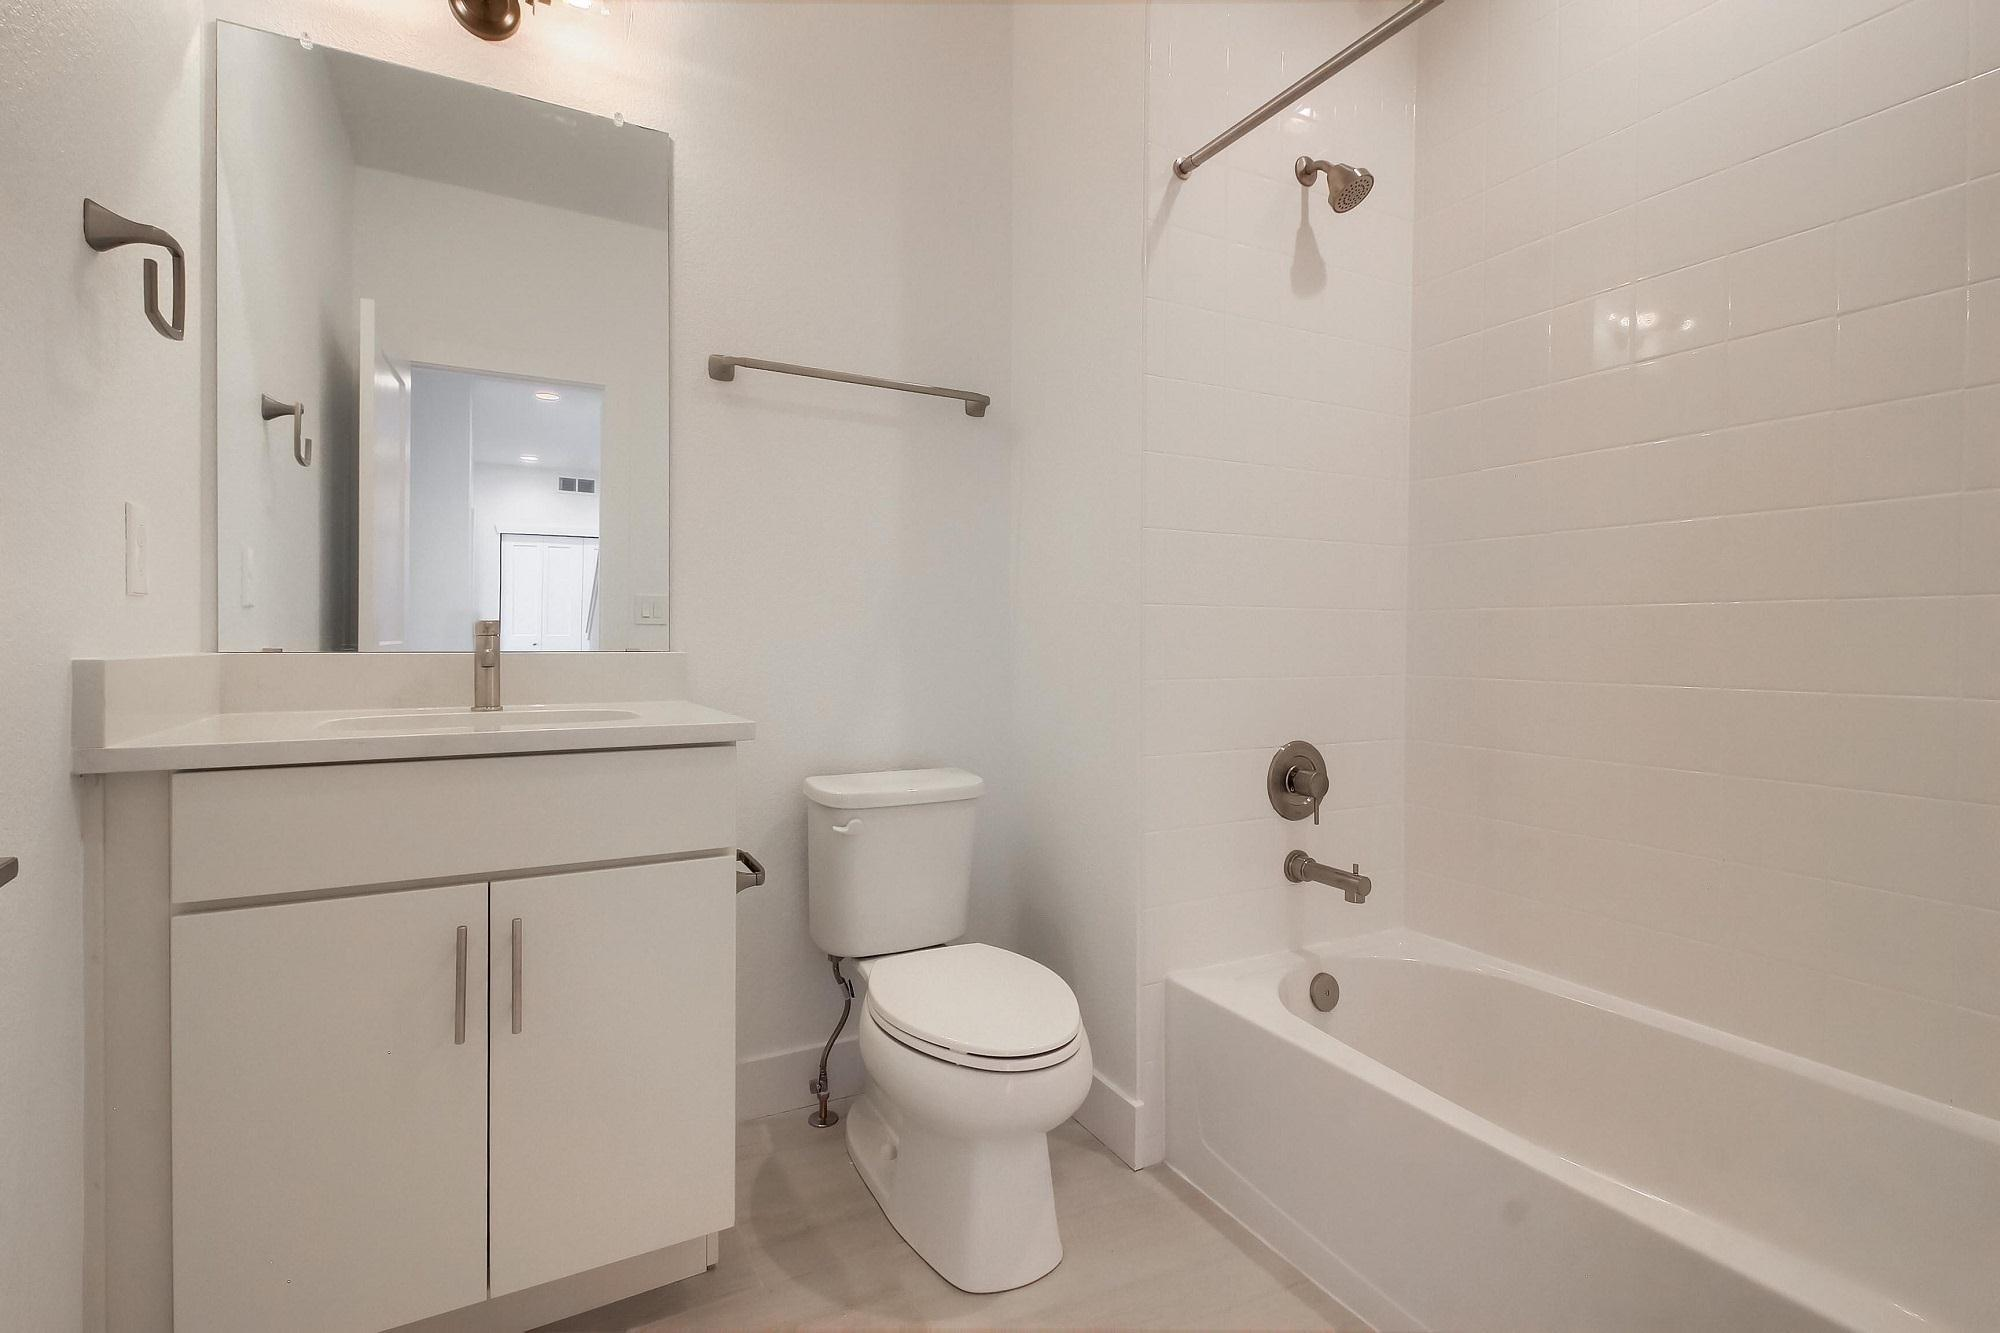 Bathroom featured in the C Unit By Koelbel Urban Homes in Denver, CO